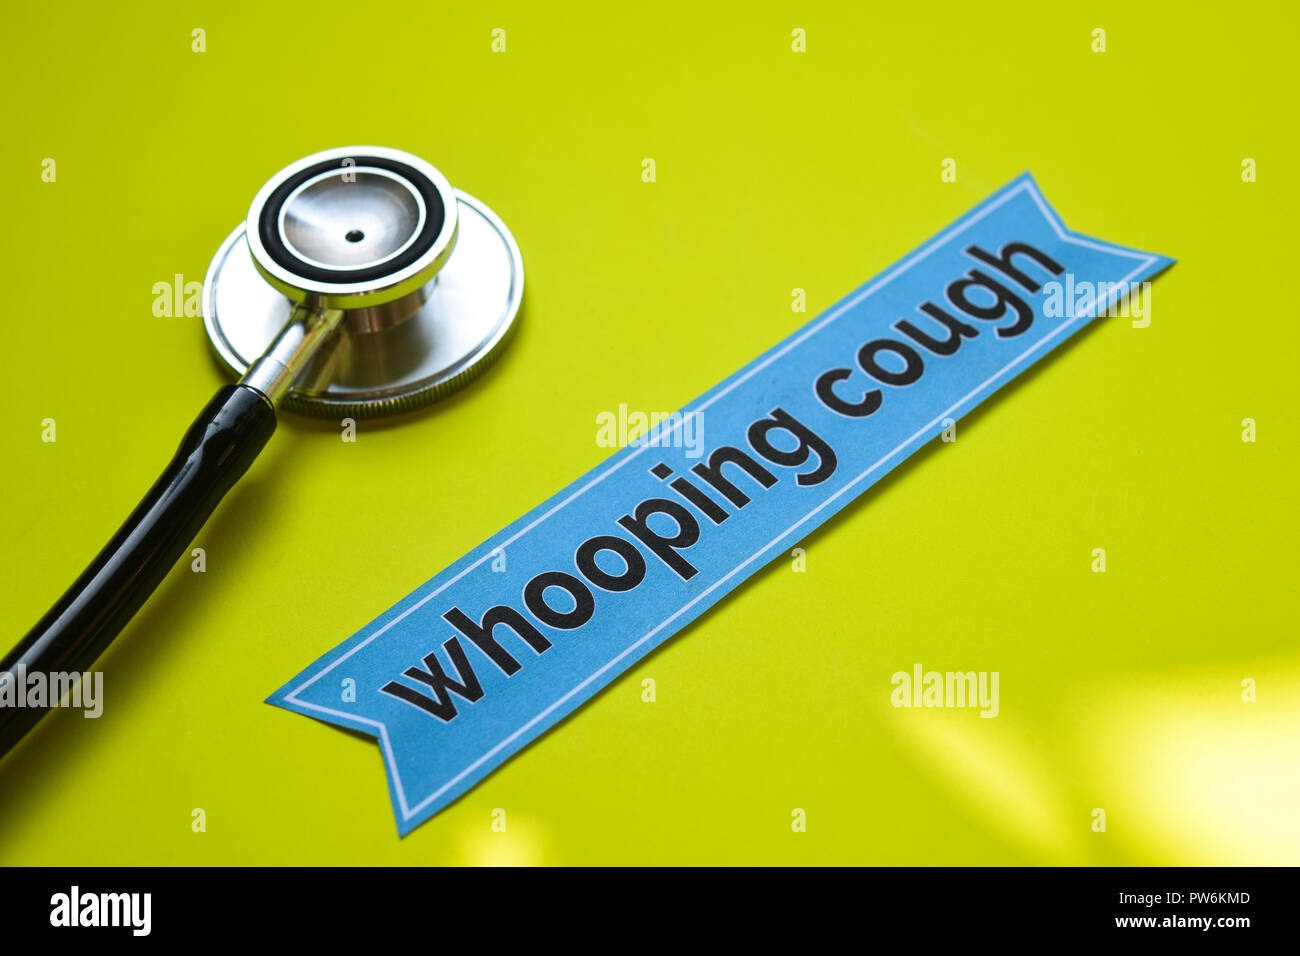 whooping cough with stethoscope concept inspiration on yellow background - Stock Image